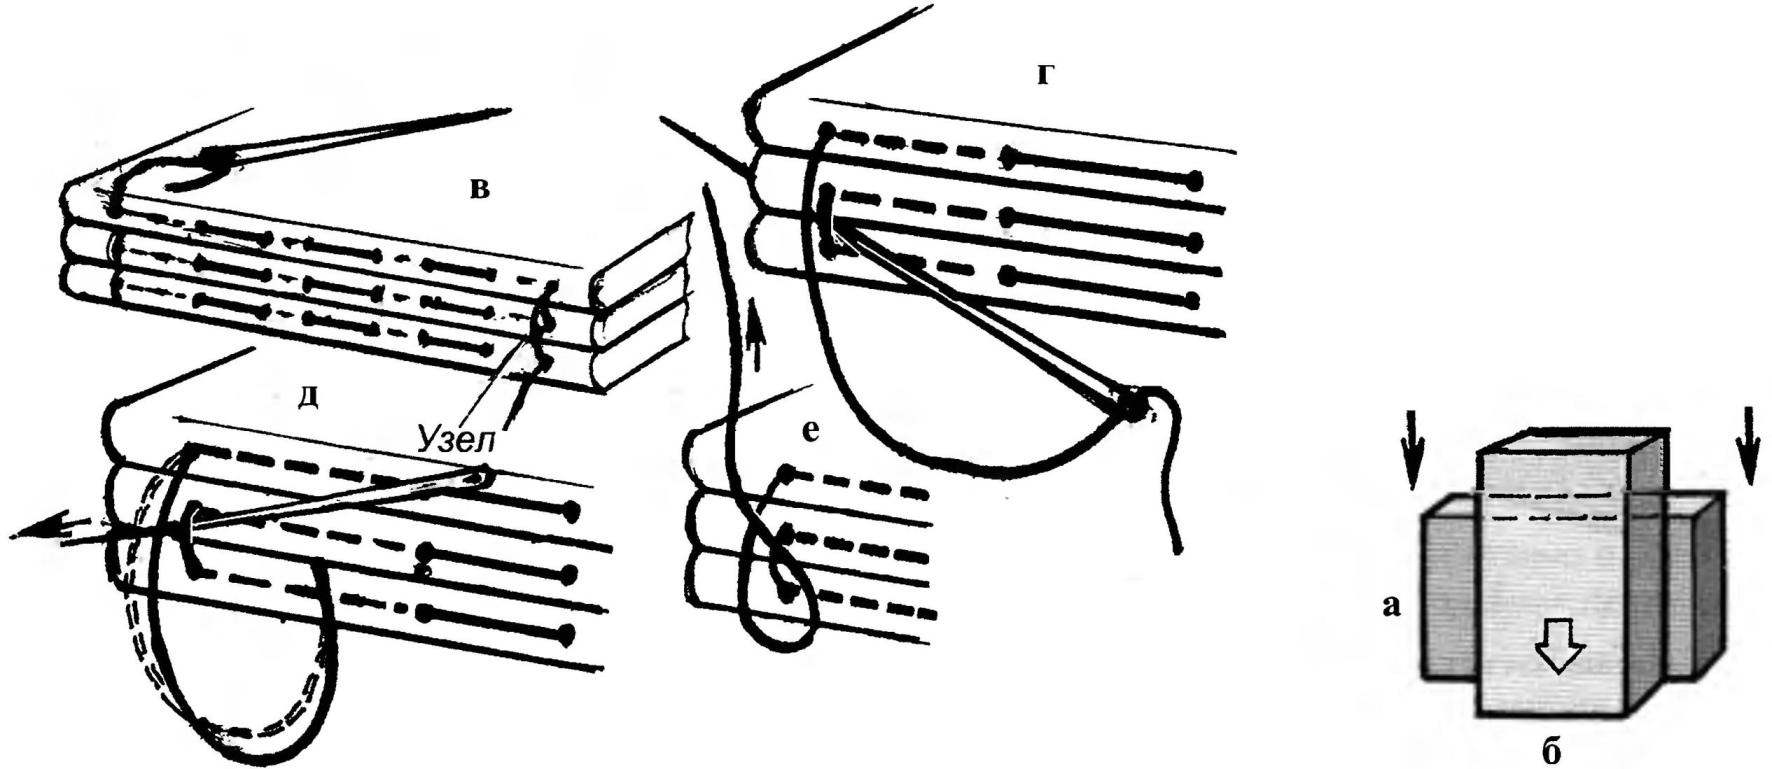 Fig. 5. The alignment of a block of notebooks on the spine (a) and head (b)